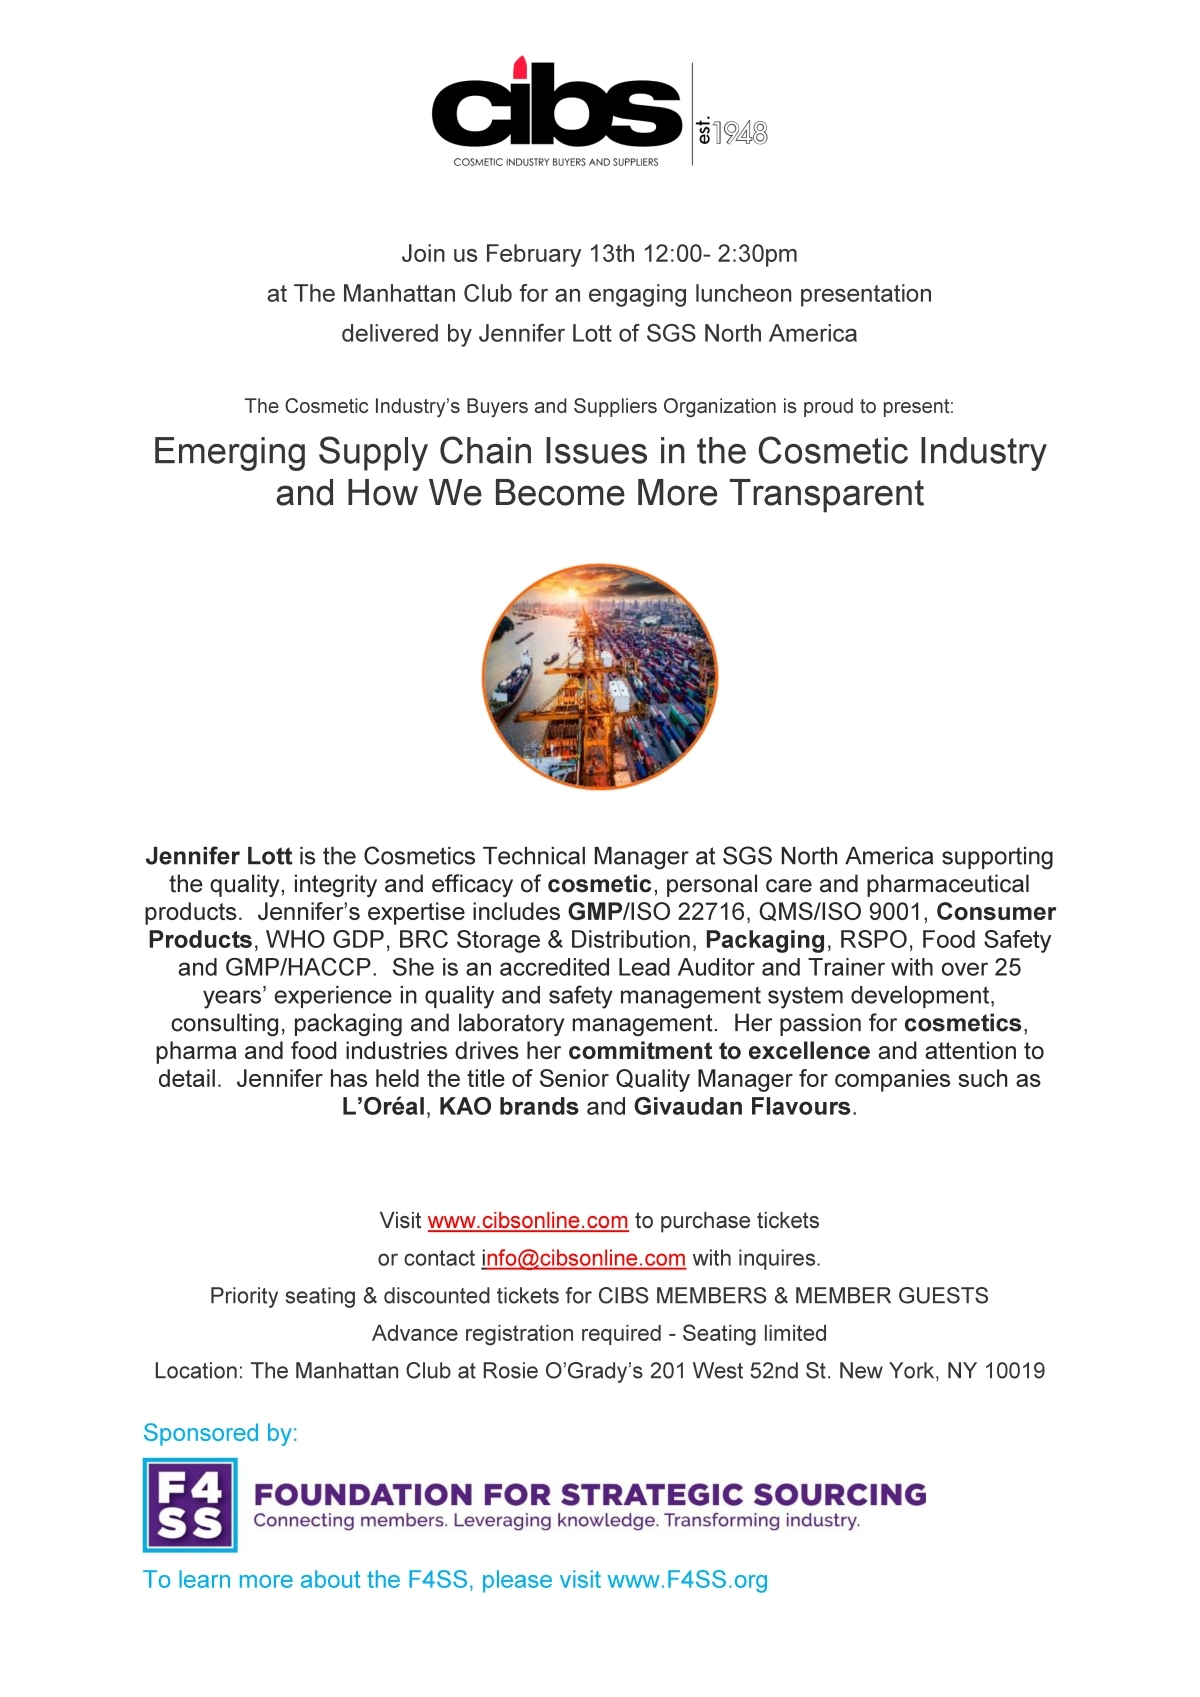 CIBS Business Luncheon Meeting - Events - Cosmetic Industry